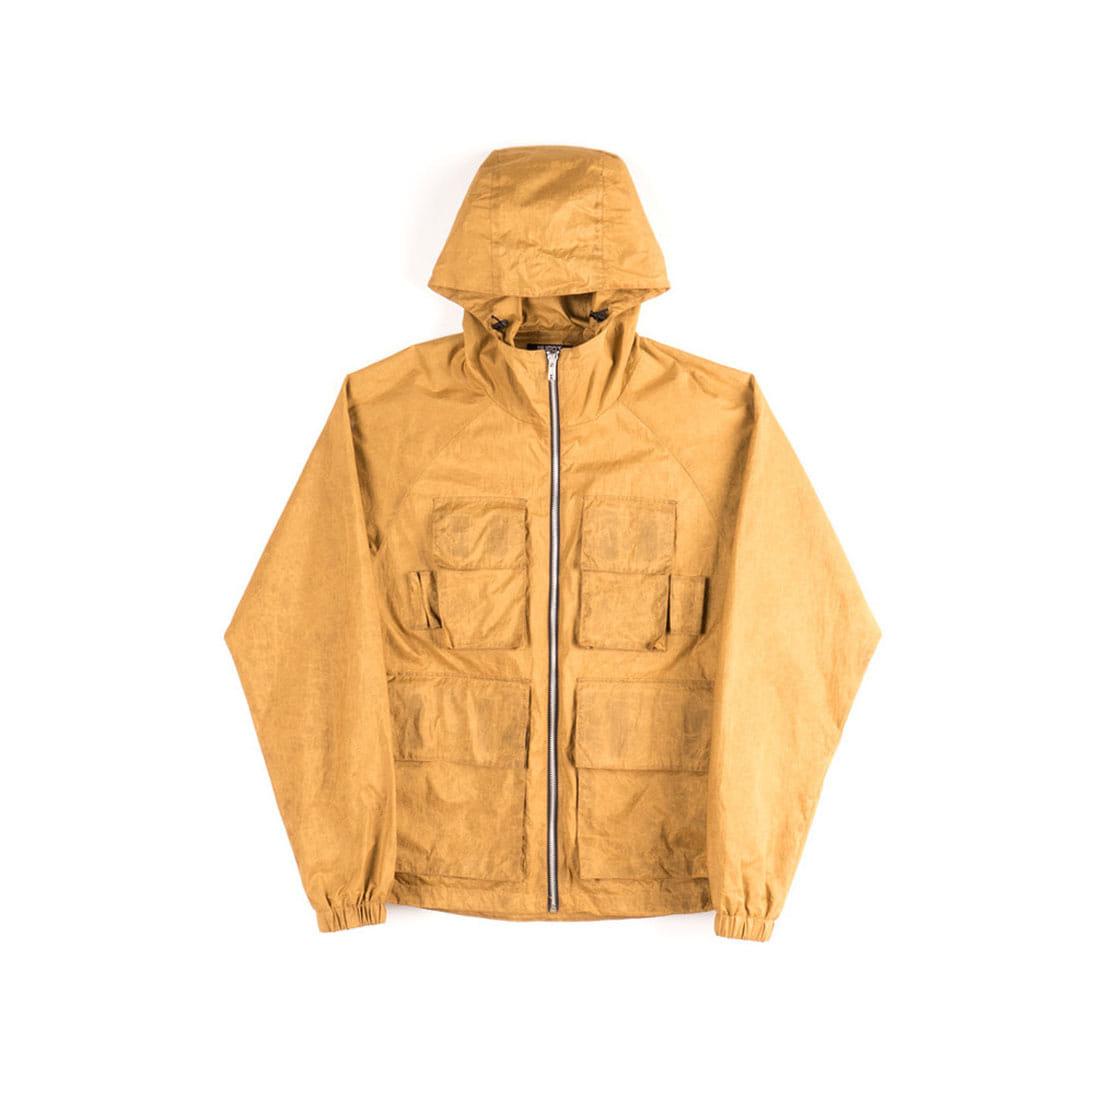 YELLOW FUTURE VINTAGE TRACK JACKET